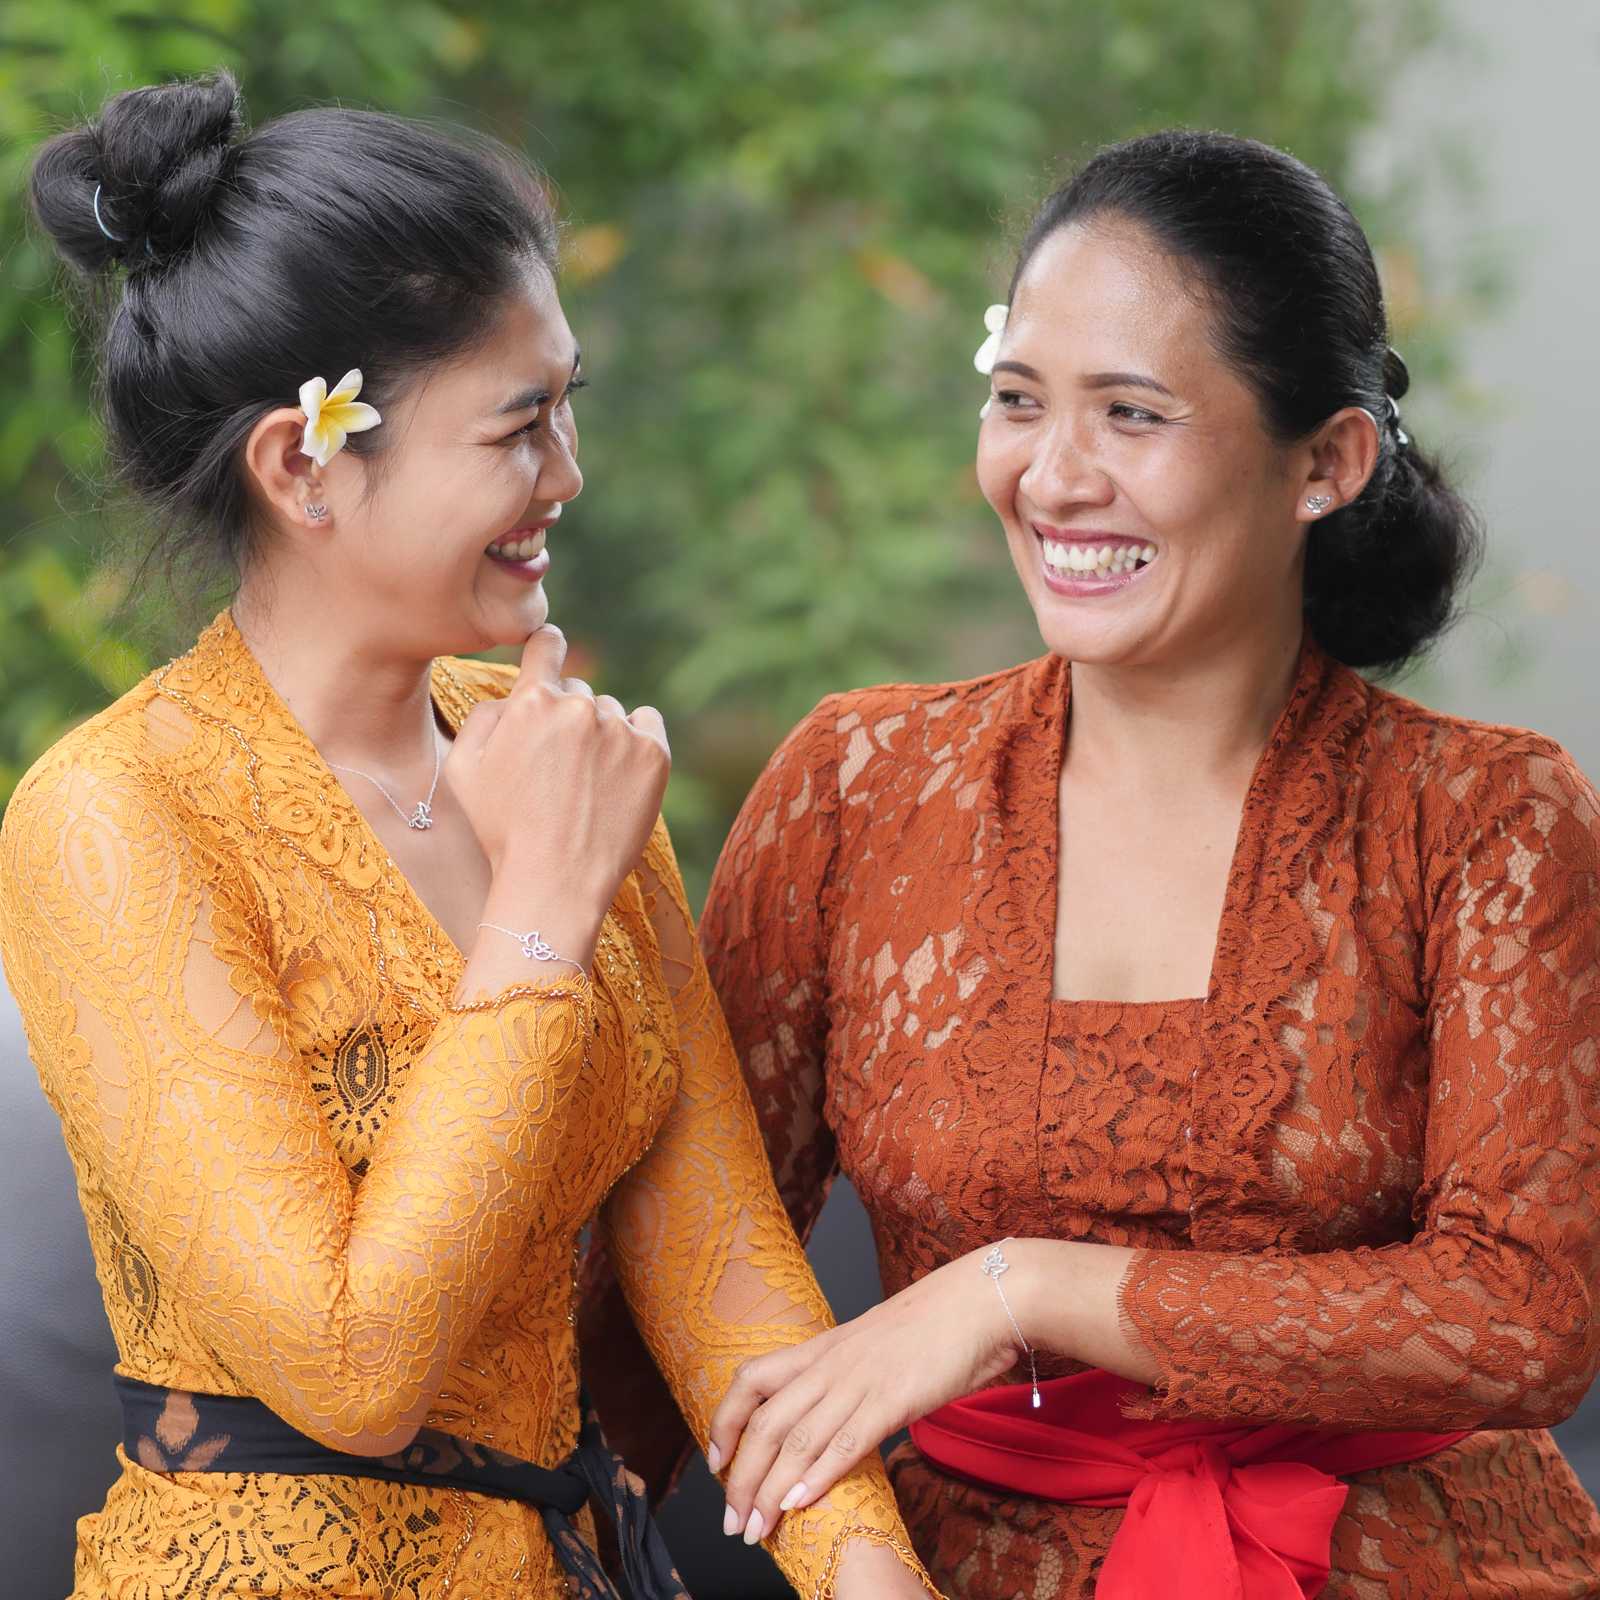 Balinese women in traditional clothing showing the Forever Label.